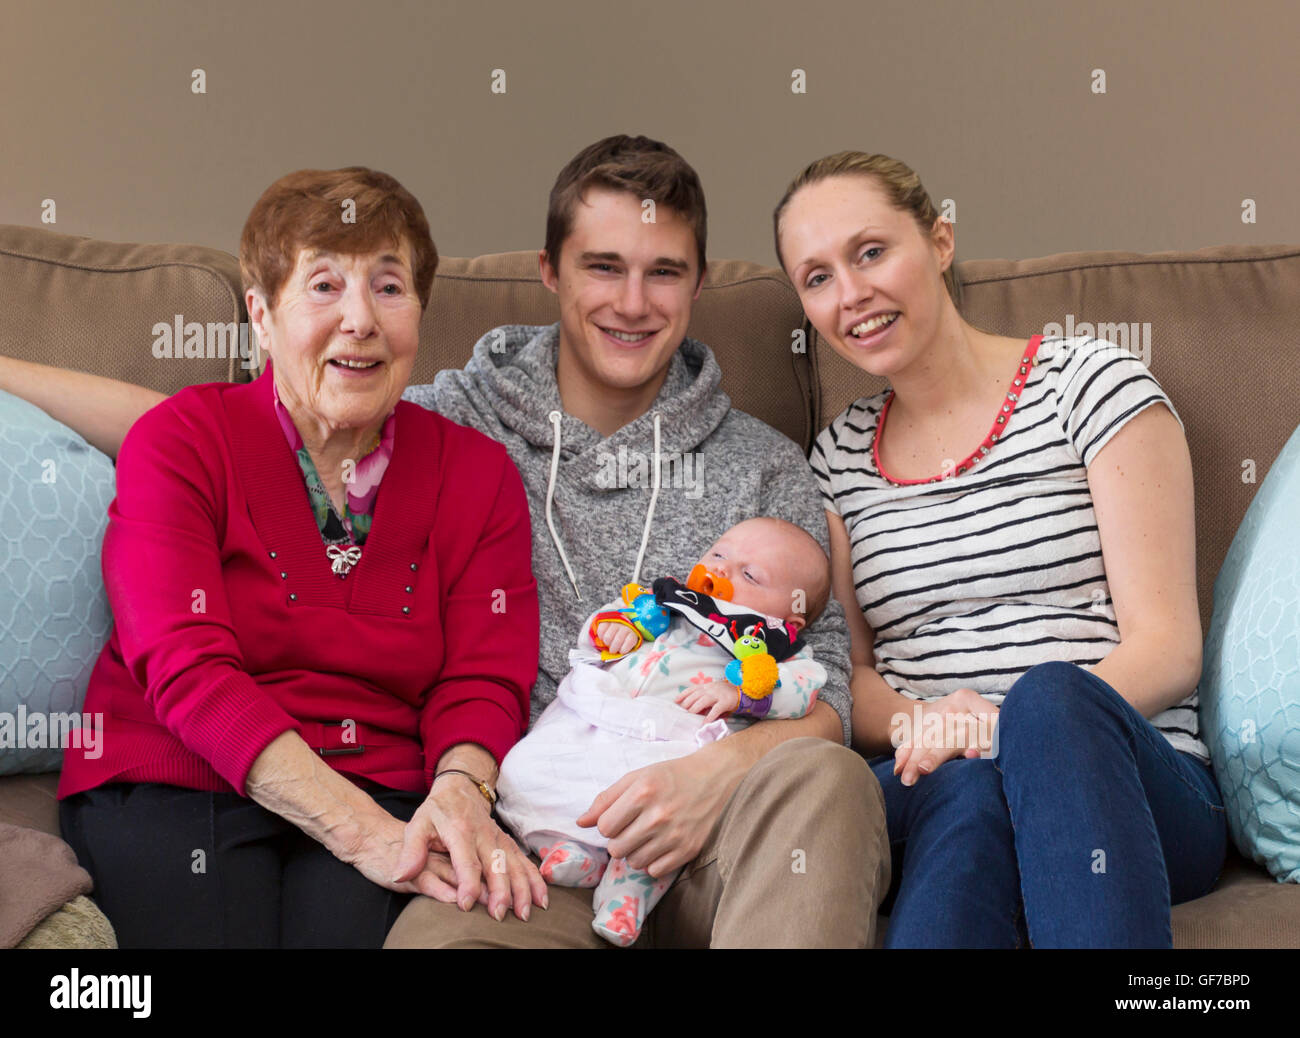 3 generations of people, multi generation of people sitting on sofa with baby - Stock Image